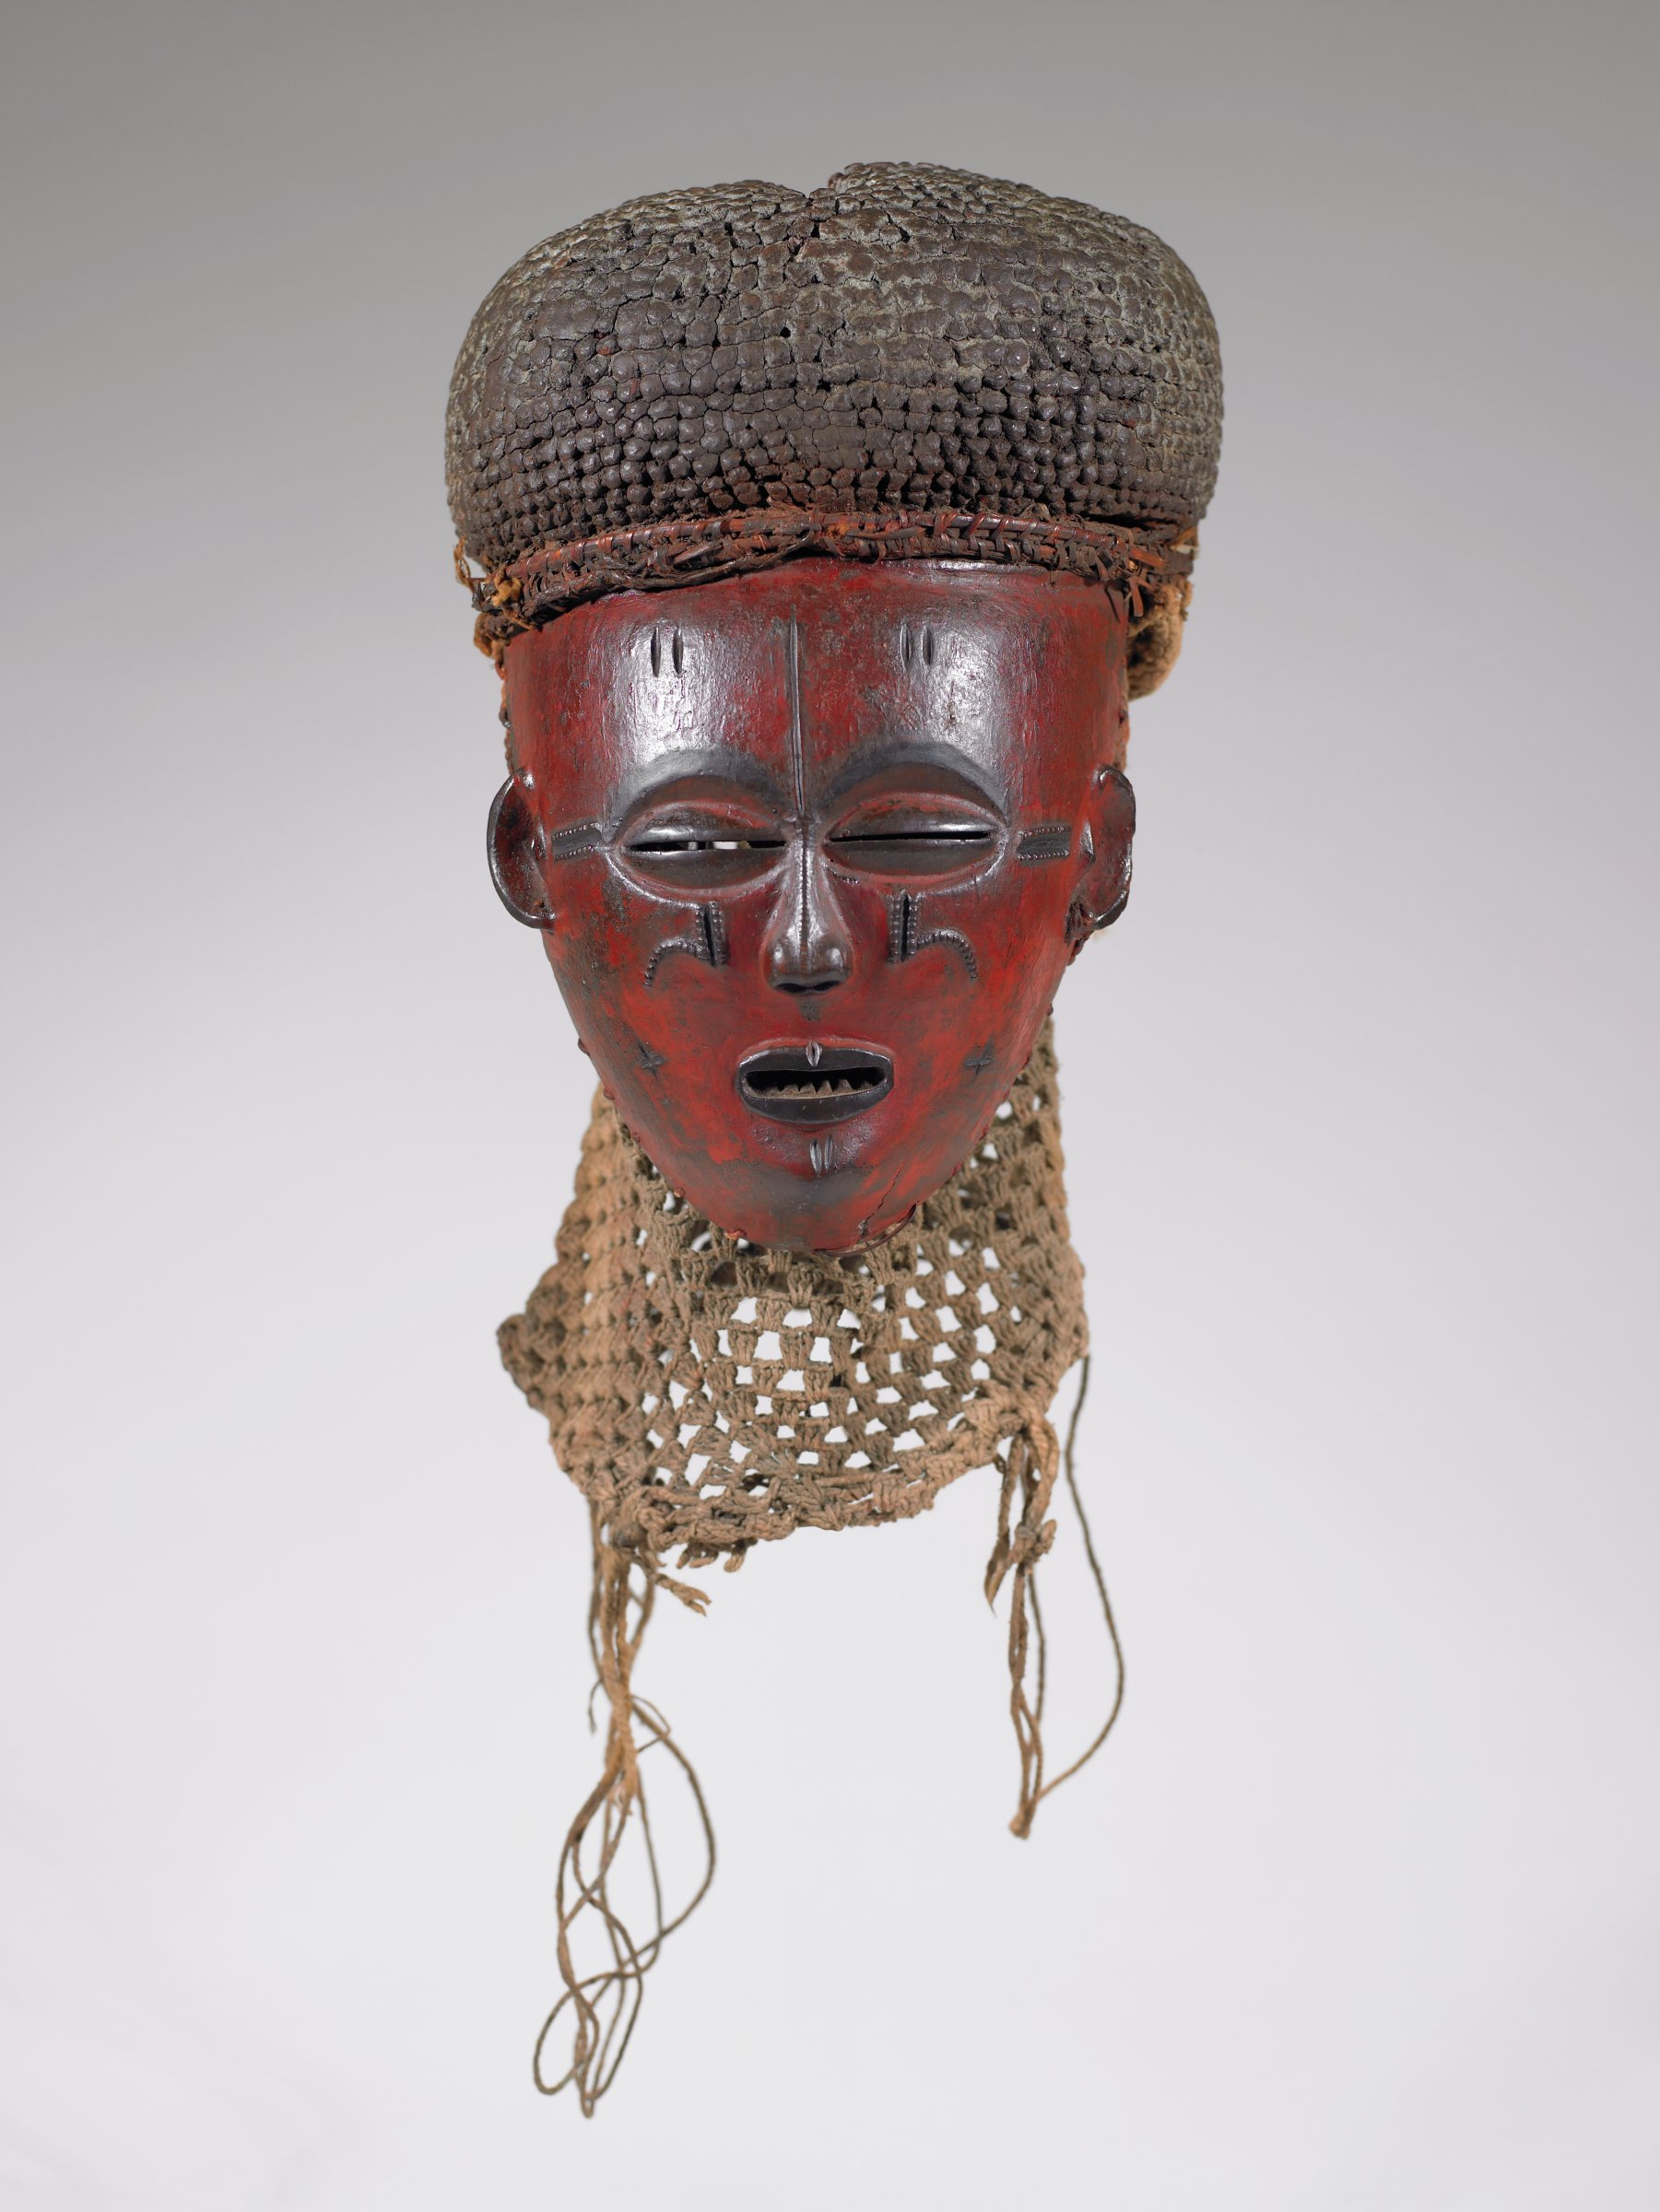 Carved wooden mask with mud packed fiber wig and woven neck piece. Mask used in initiation ritual.